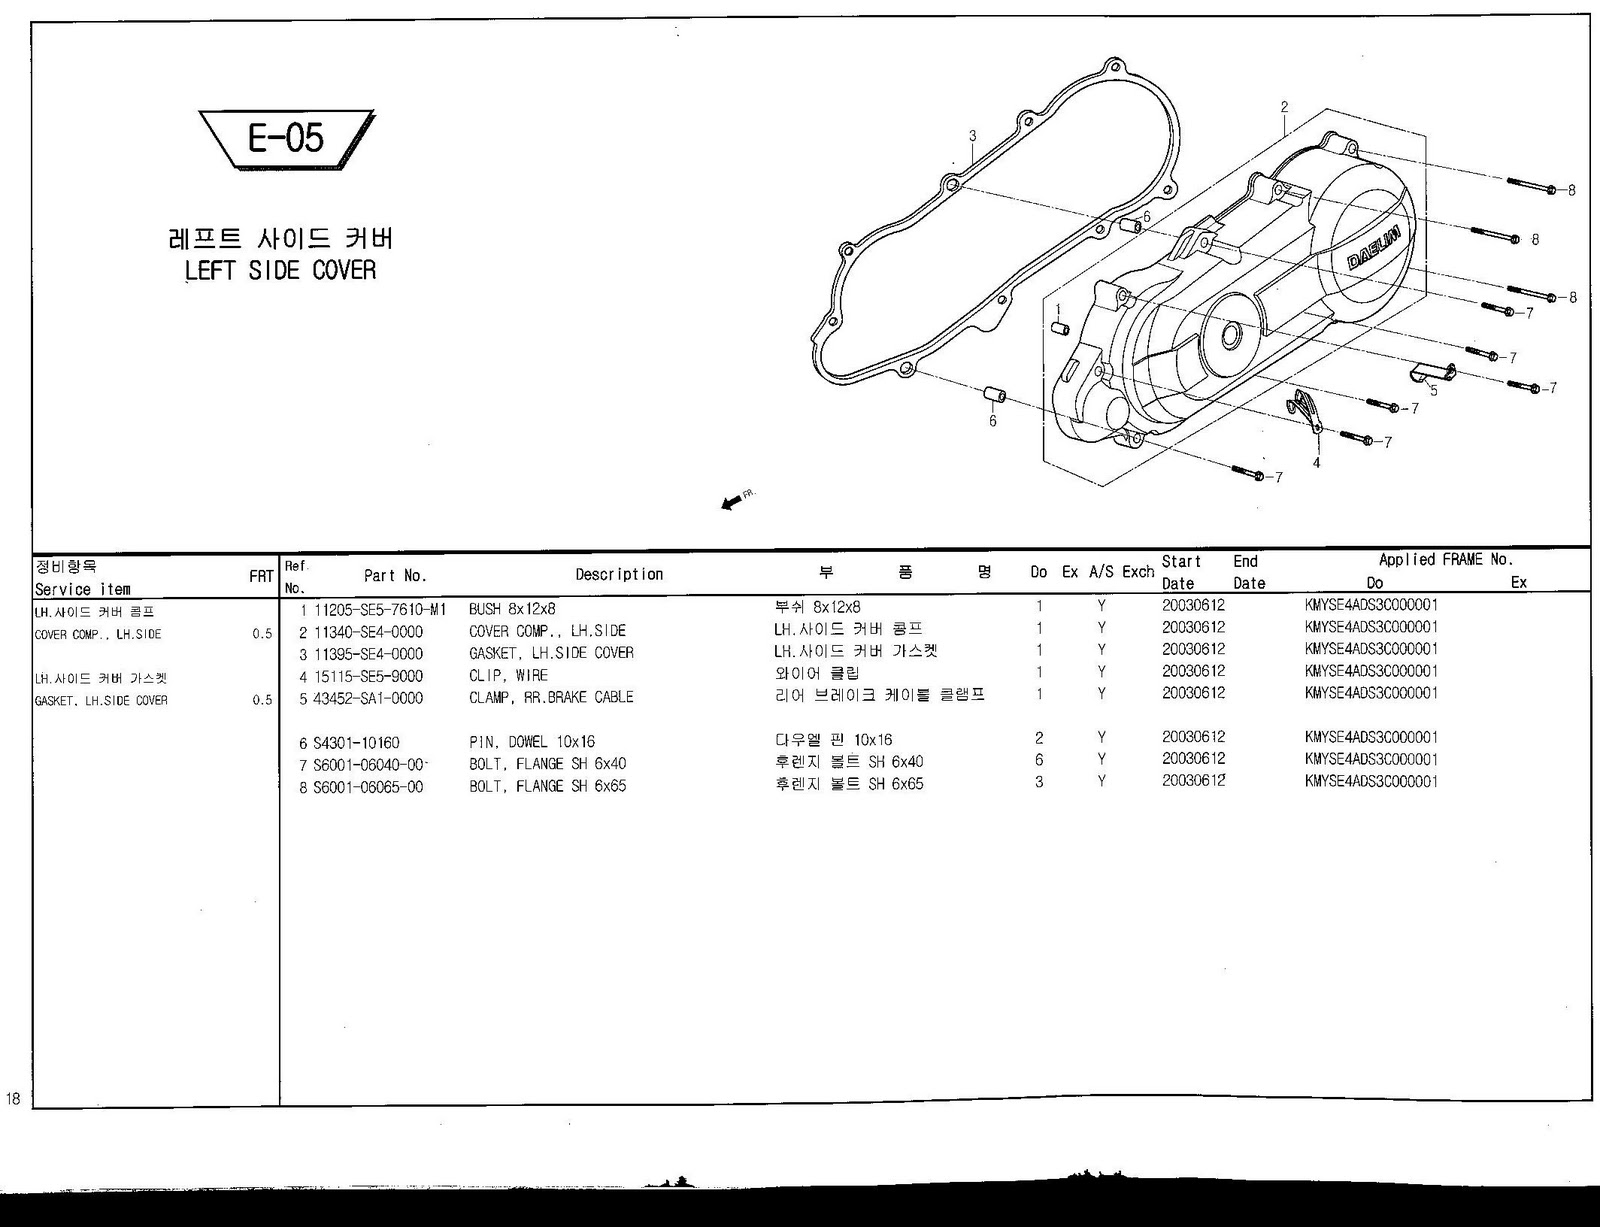 Eicma 2011 Daelim 50cc Parts Manuals For Mrp Motofino Wire Diagram 2010 More Visit The Manual On Our Website Over 150 Repair With Part Numbers When Ordering Oem Use From